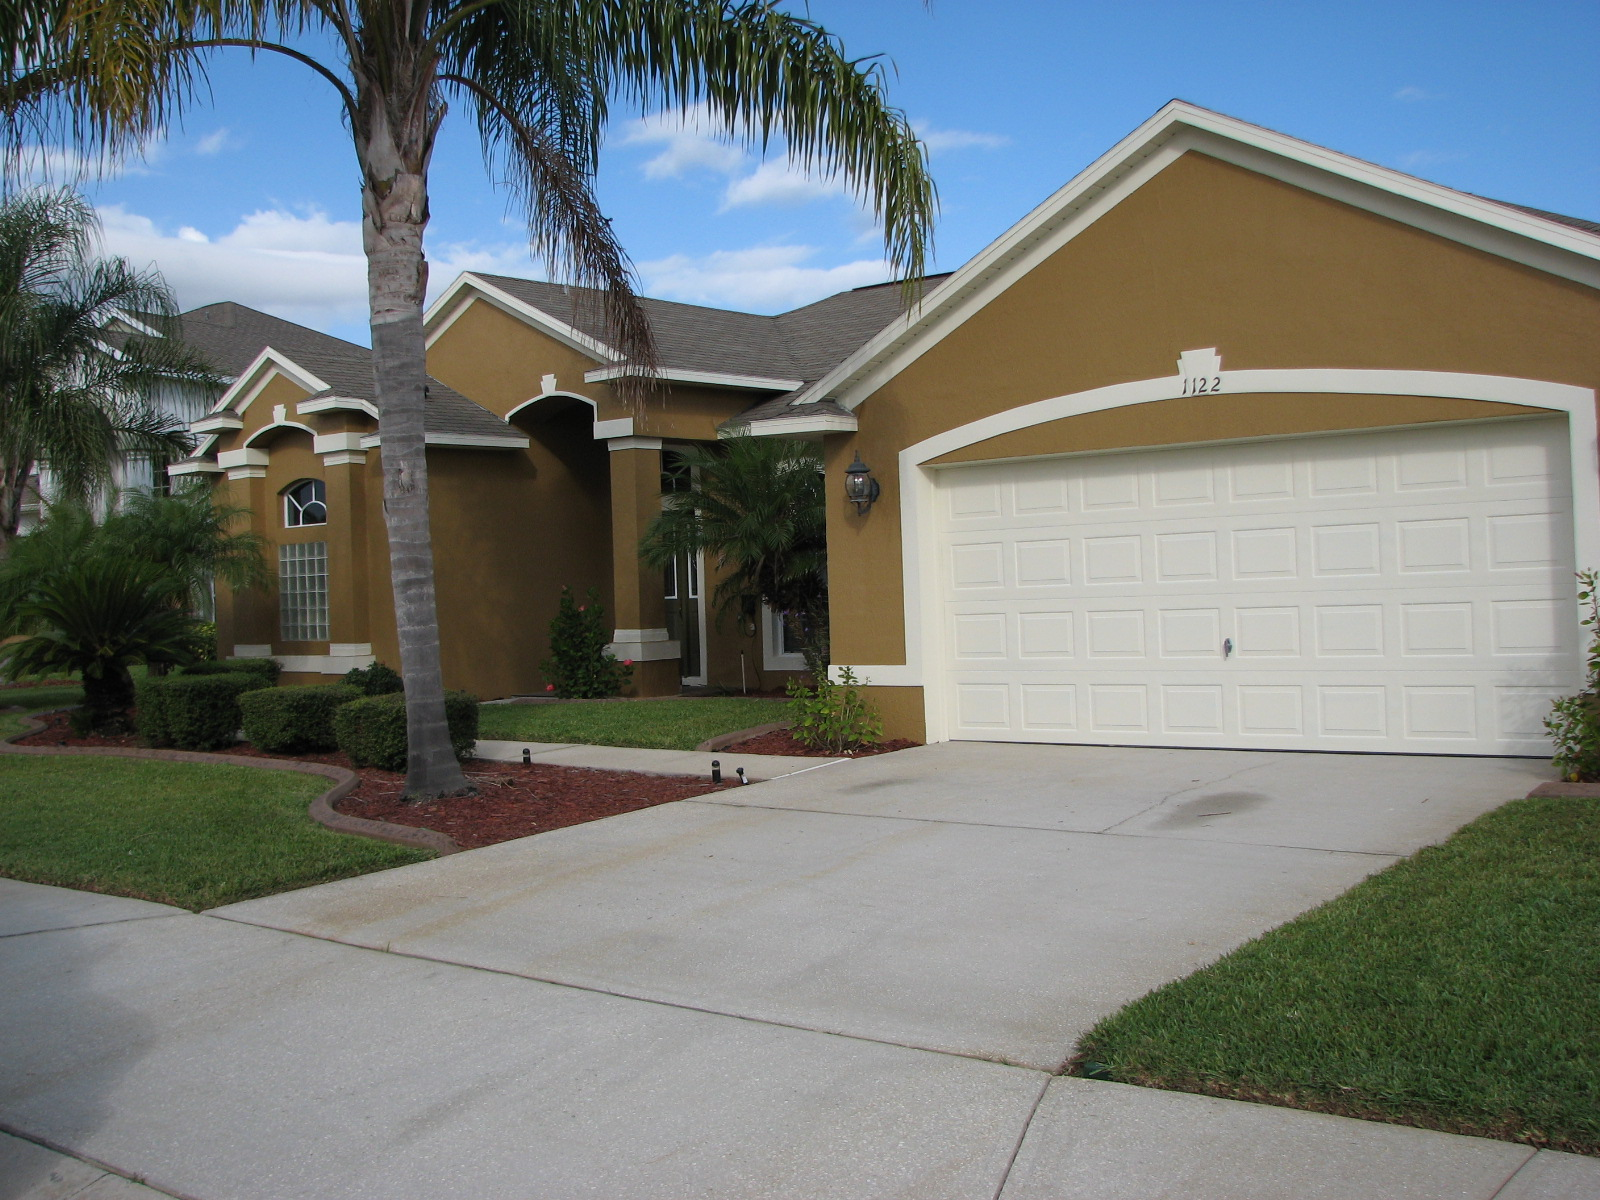 New colors for stucco homes exterior painting melbourne for Florida stucco